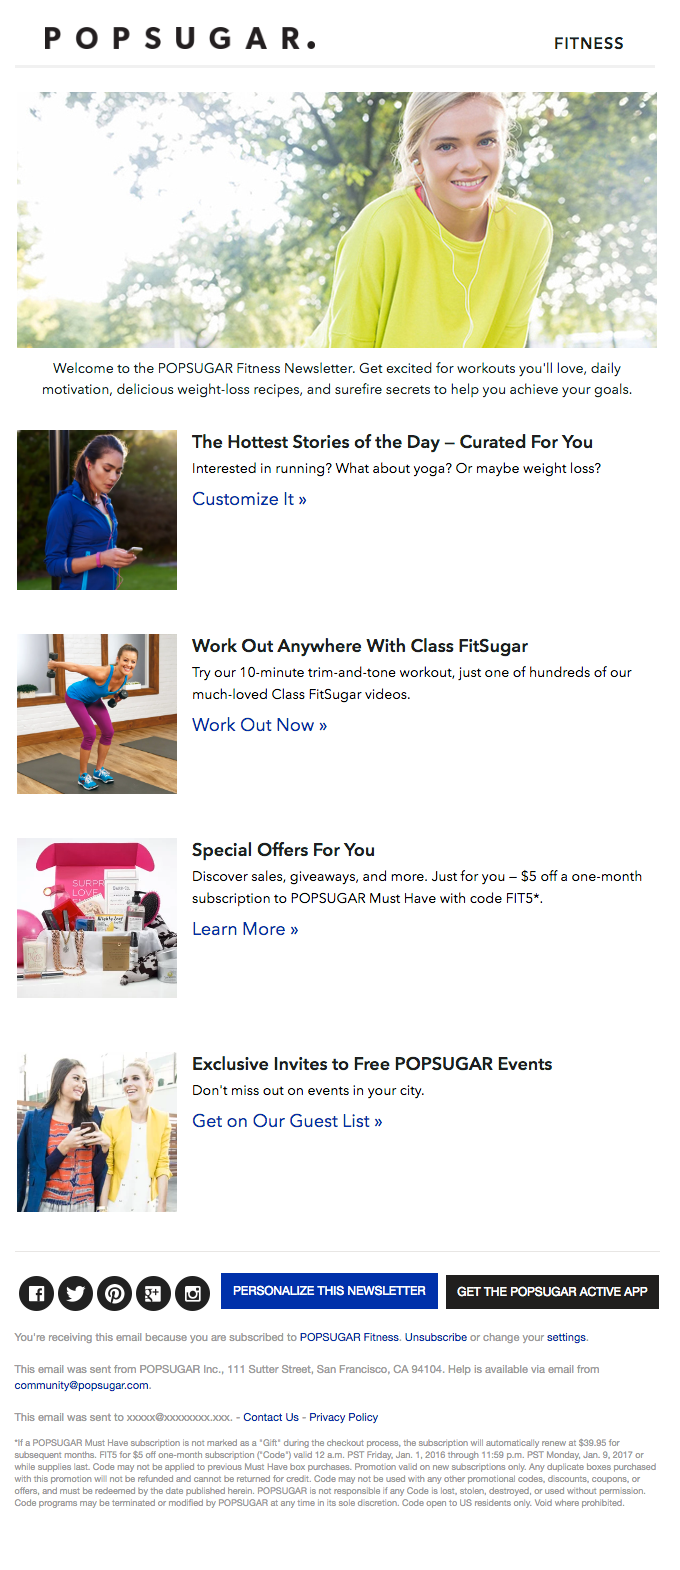 Welcome to the POPSUGAR Fitness Newsletter